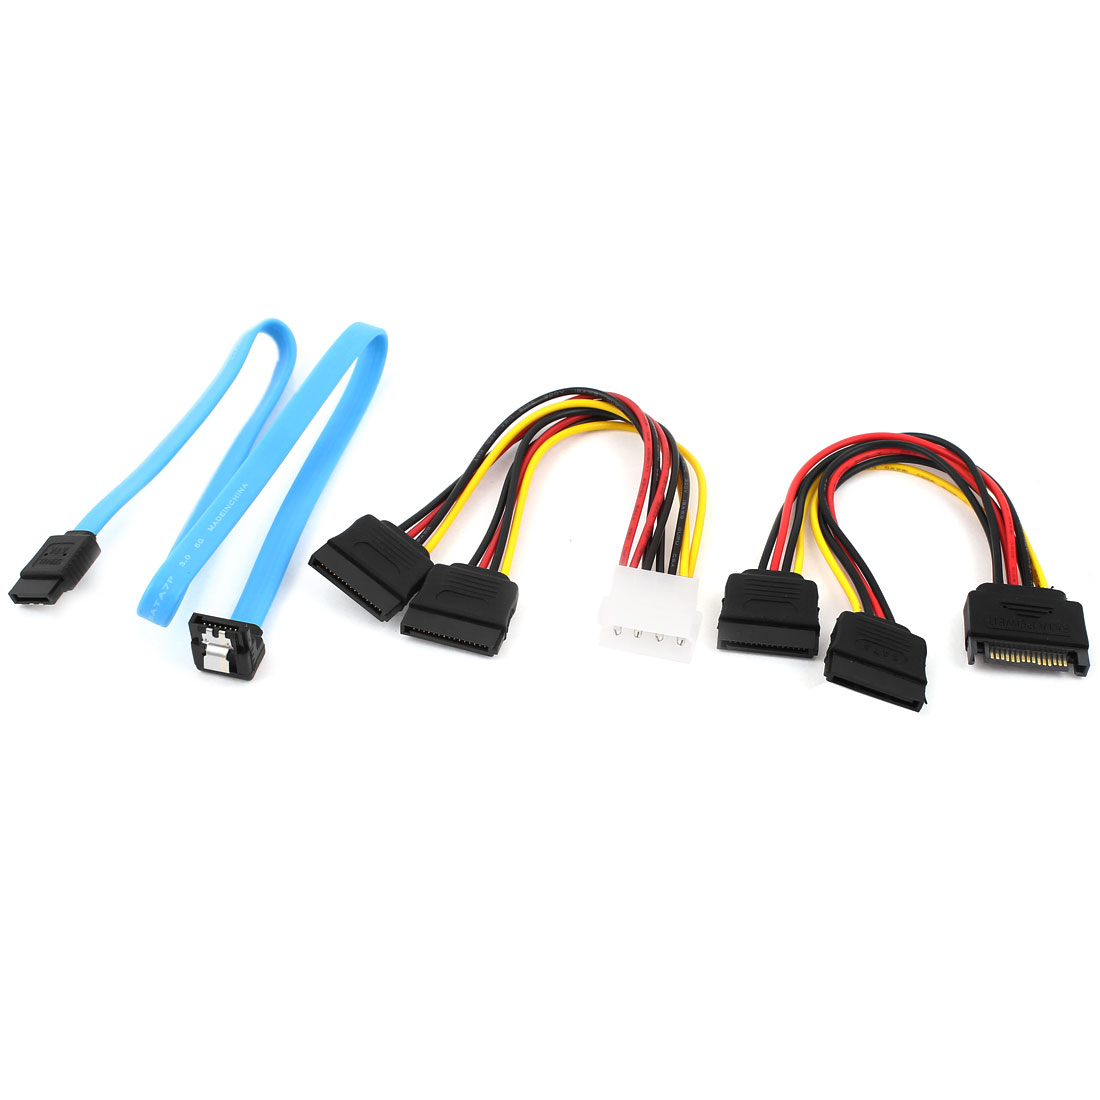 SATA 15 Pin Female to IDE 4 Pin Male ATA Serial 7 Pin Power Adapter Cable